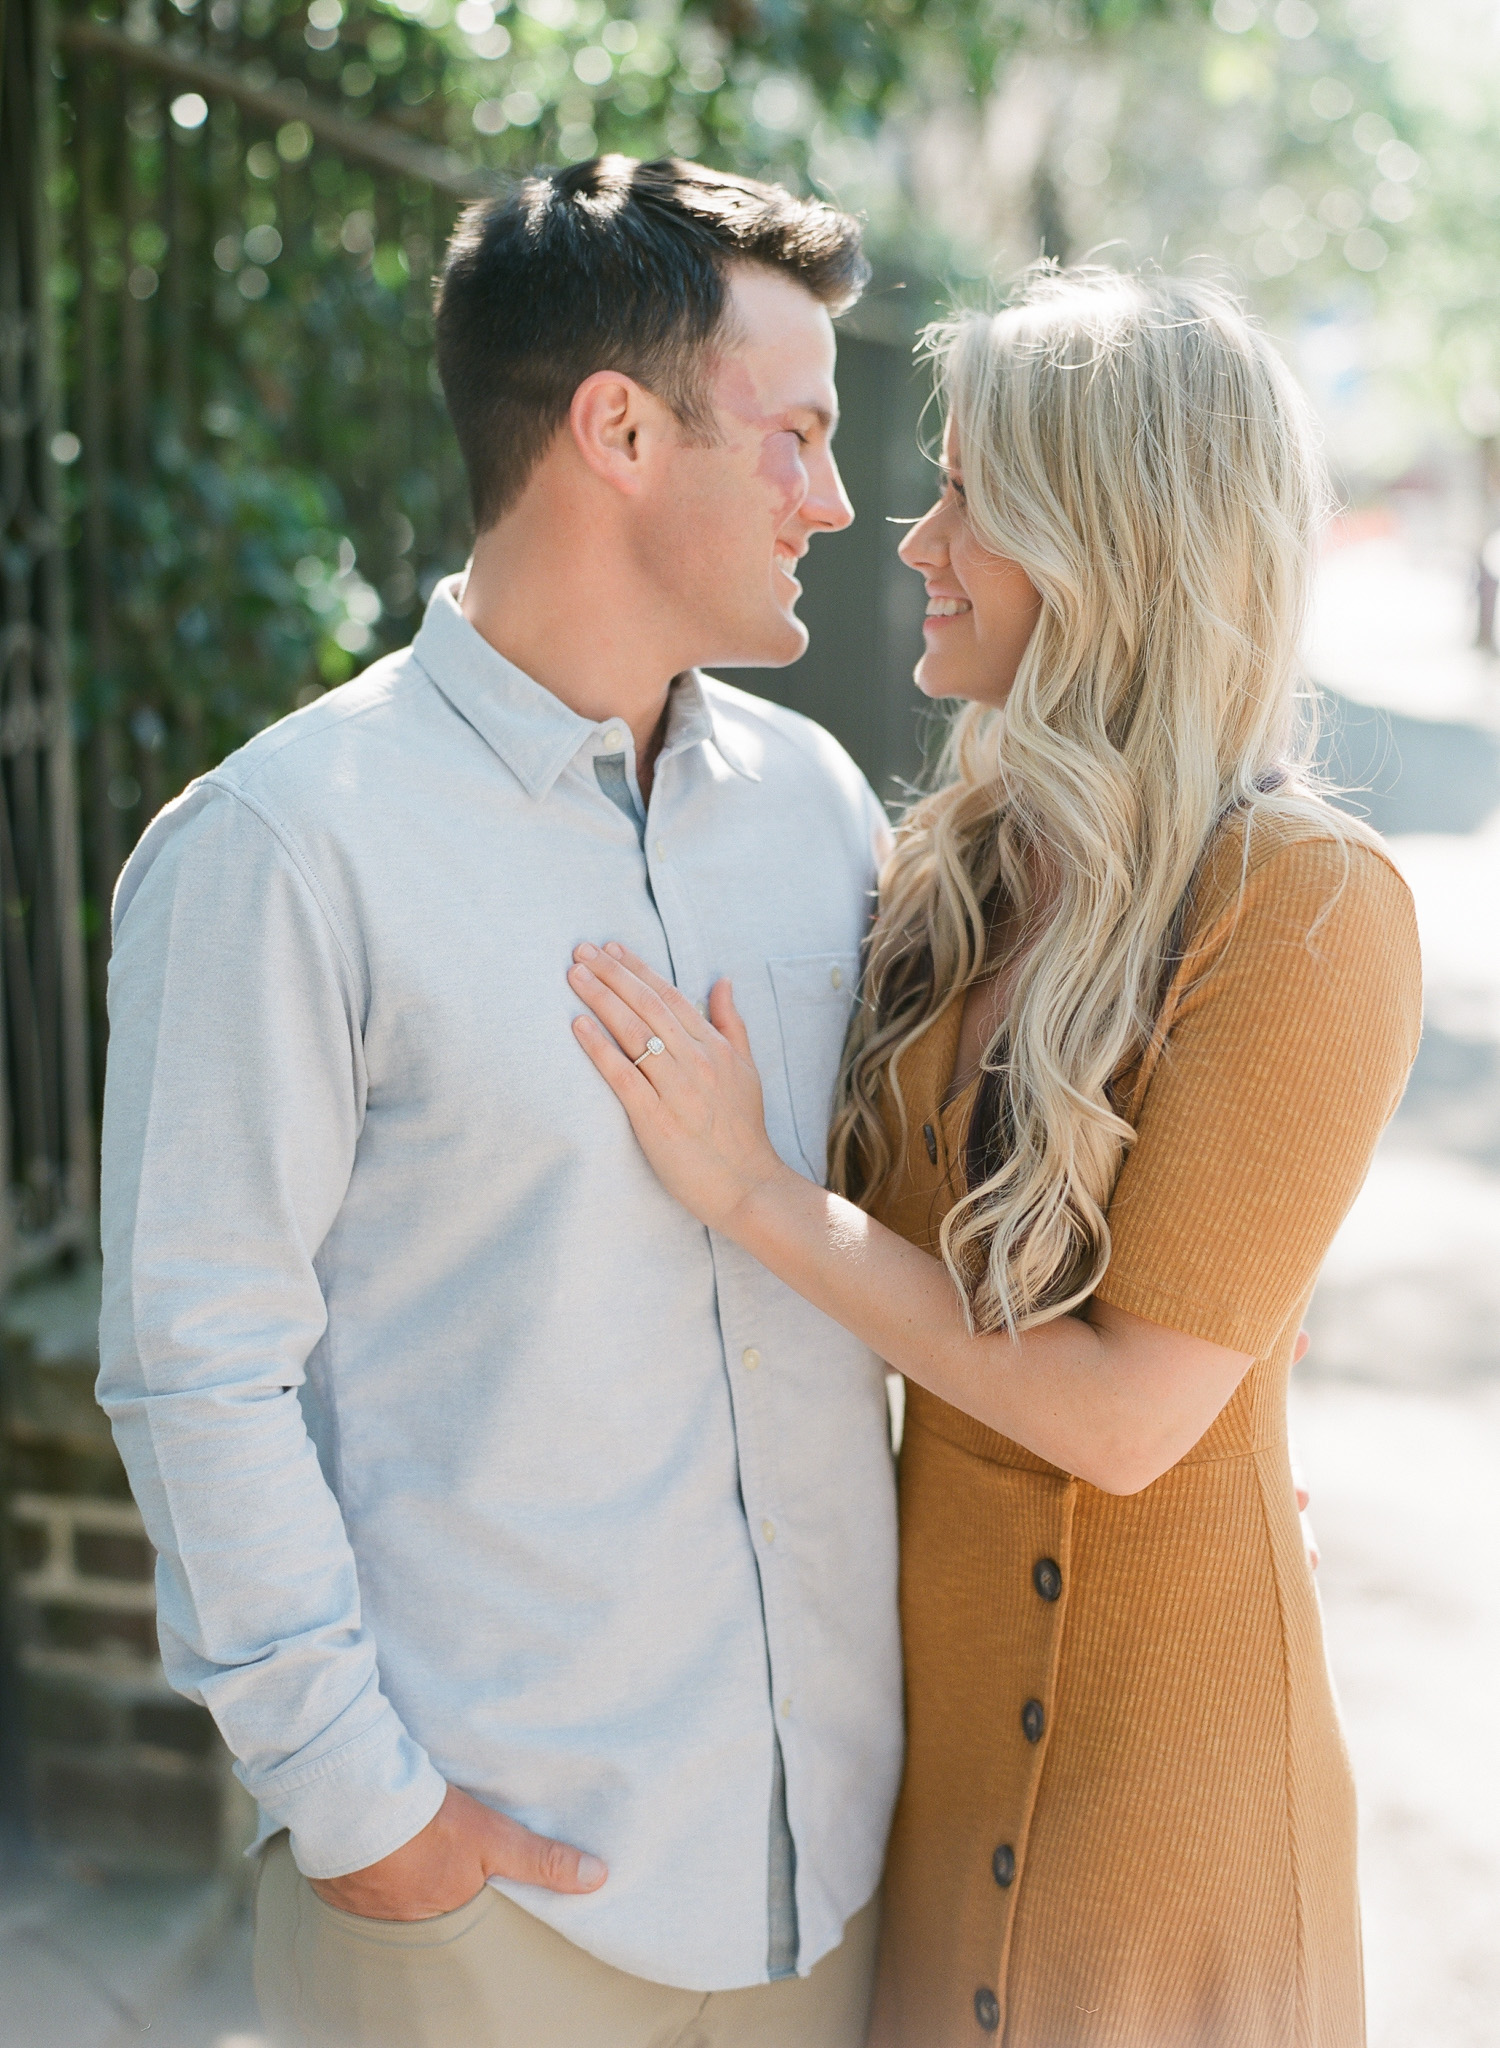 Charleston-Engagement-Photographer-56.jpg